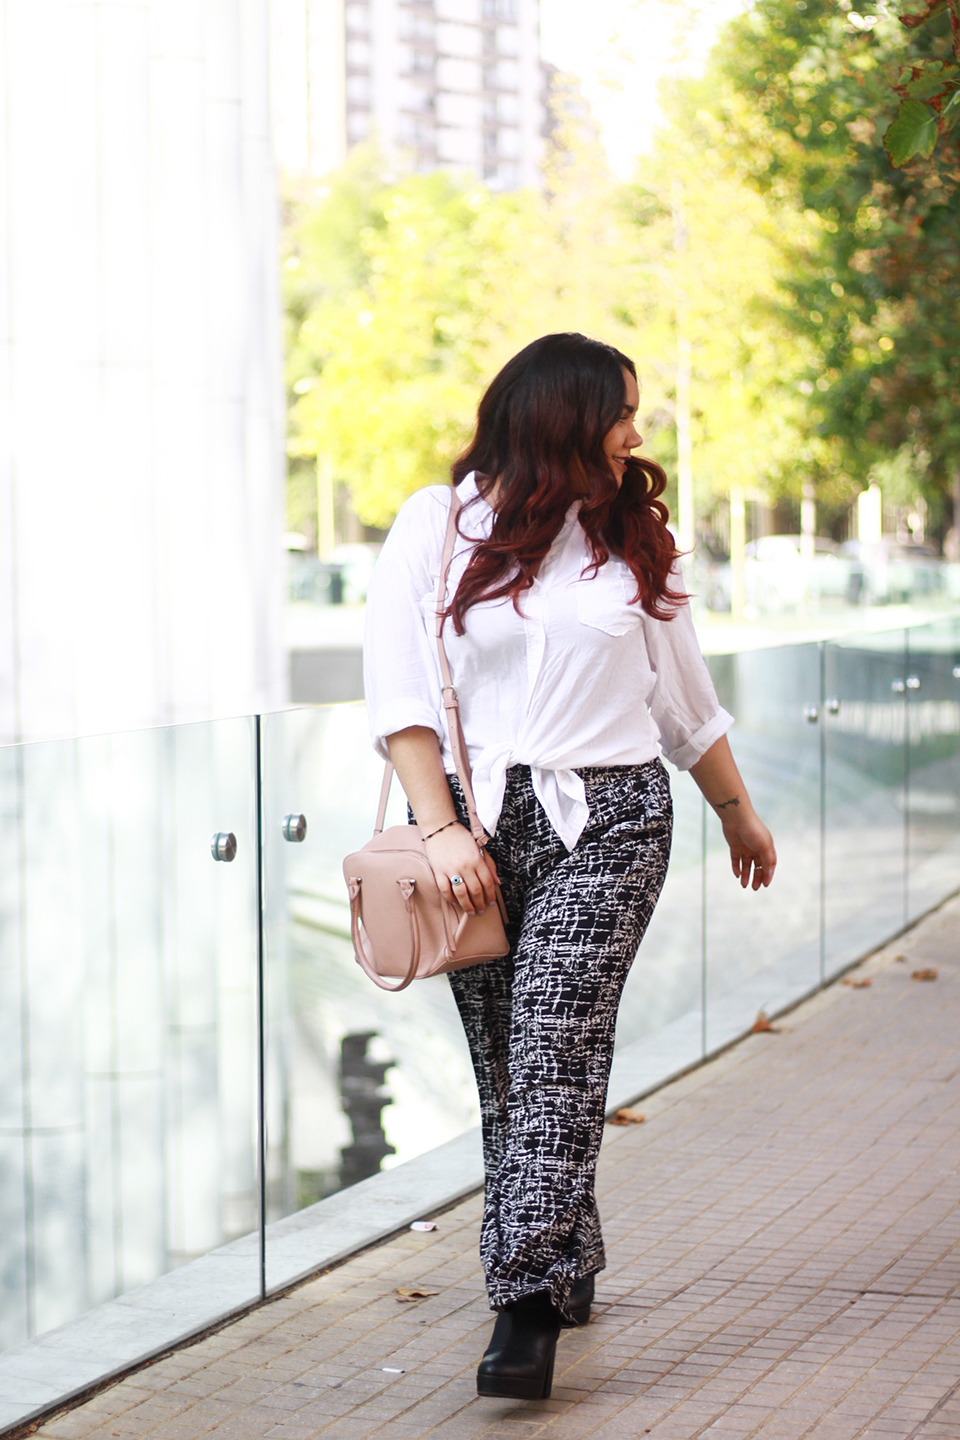 Black and white outfit | Palazzo + white shirt | GOLDEN STROKES